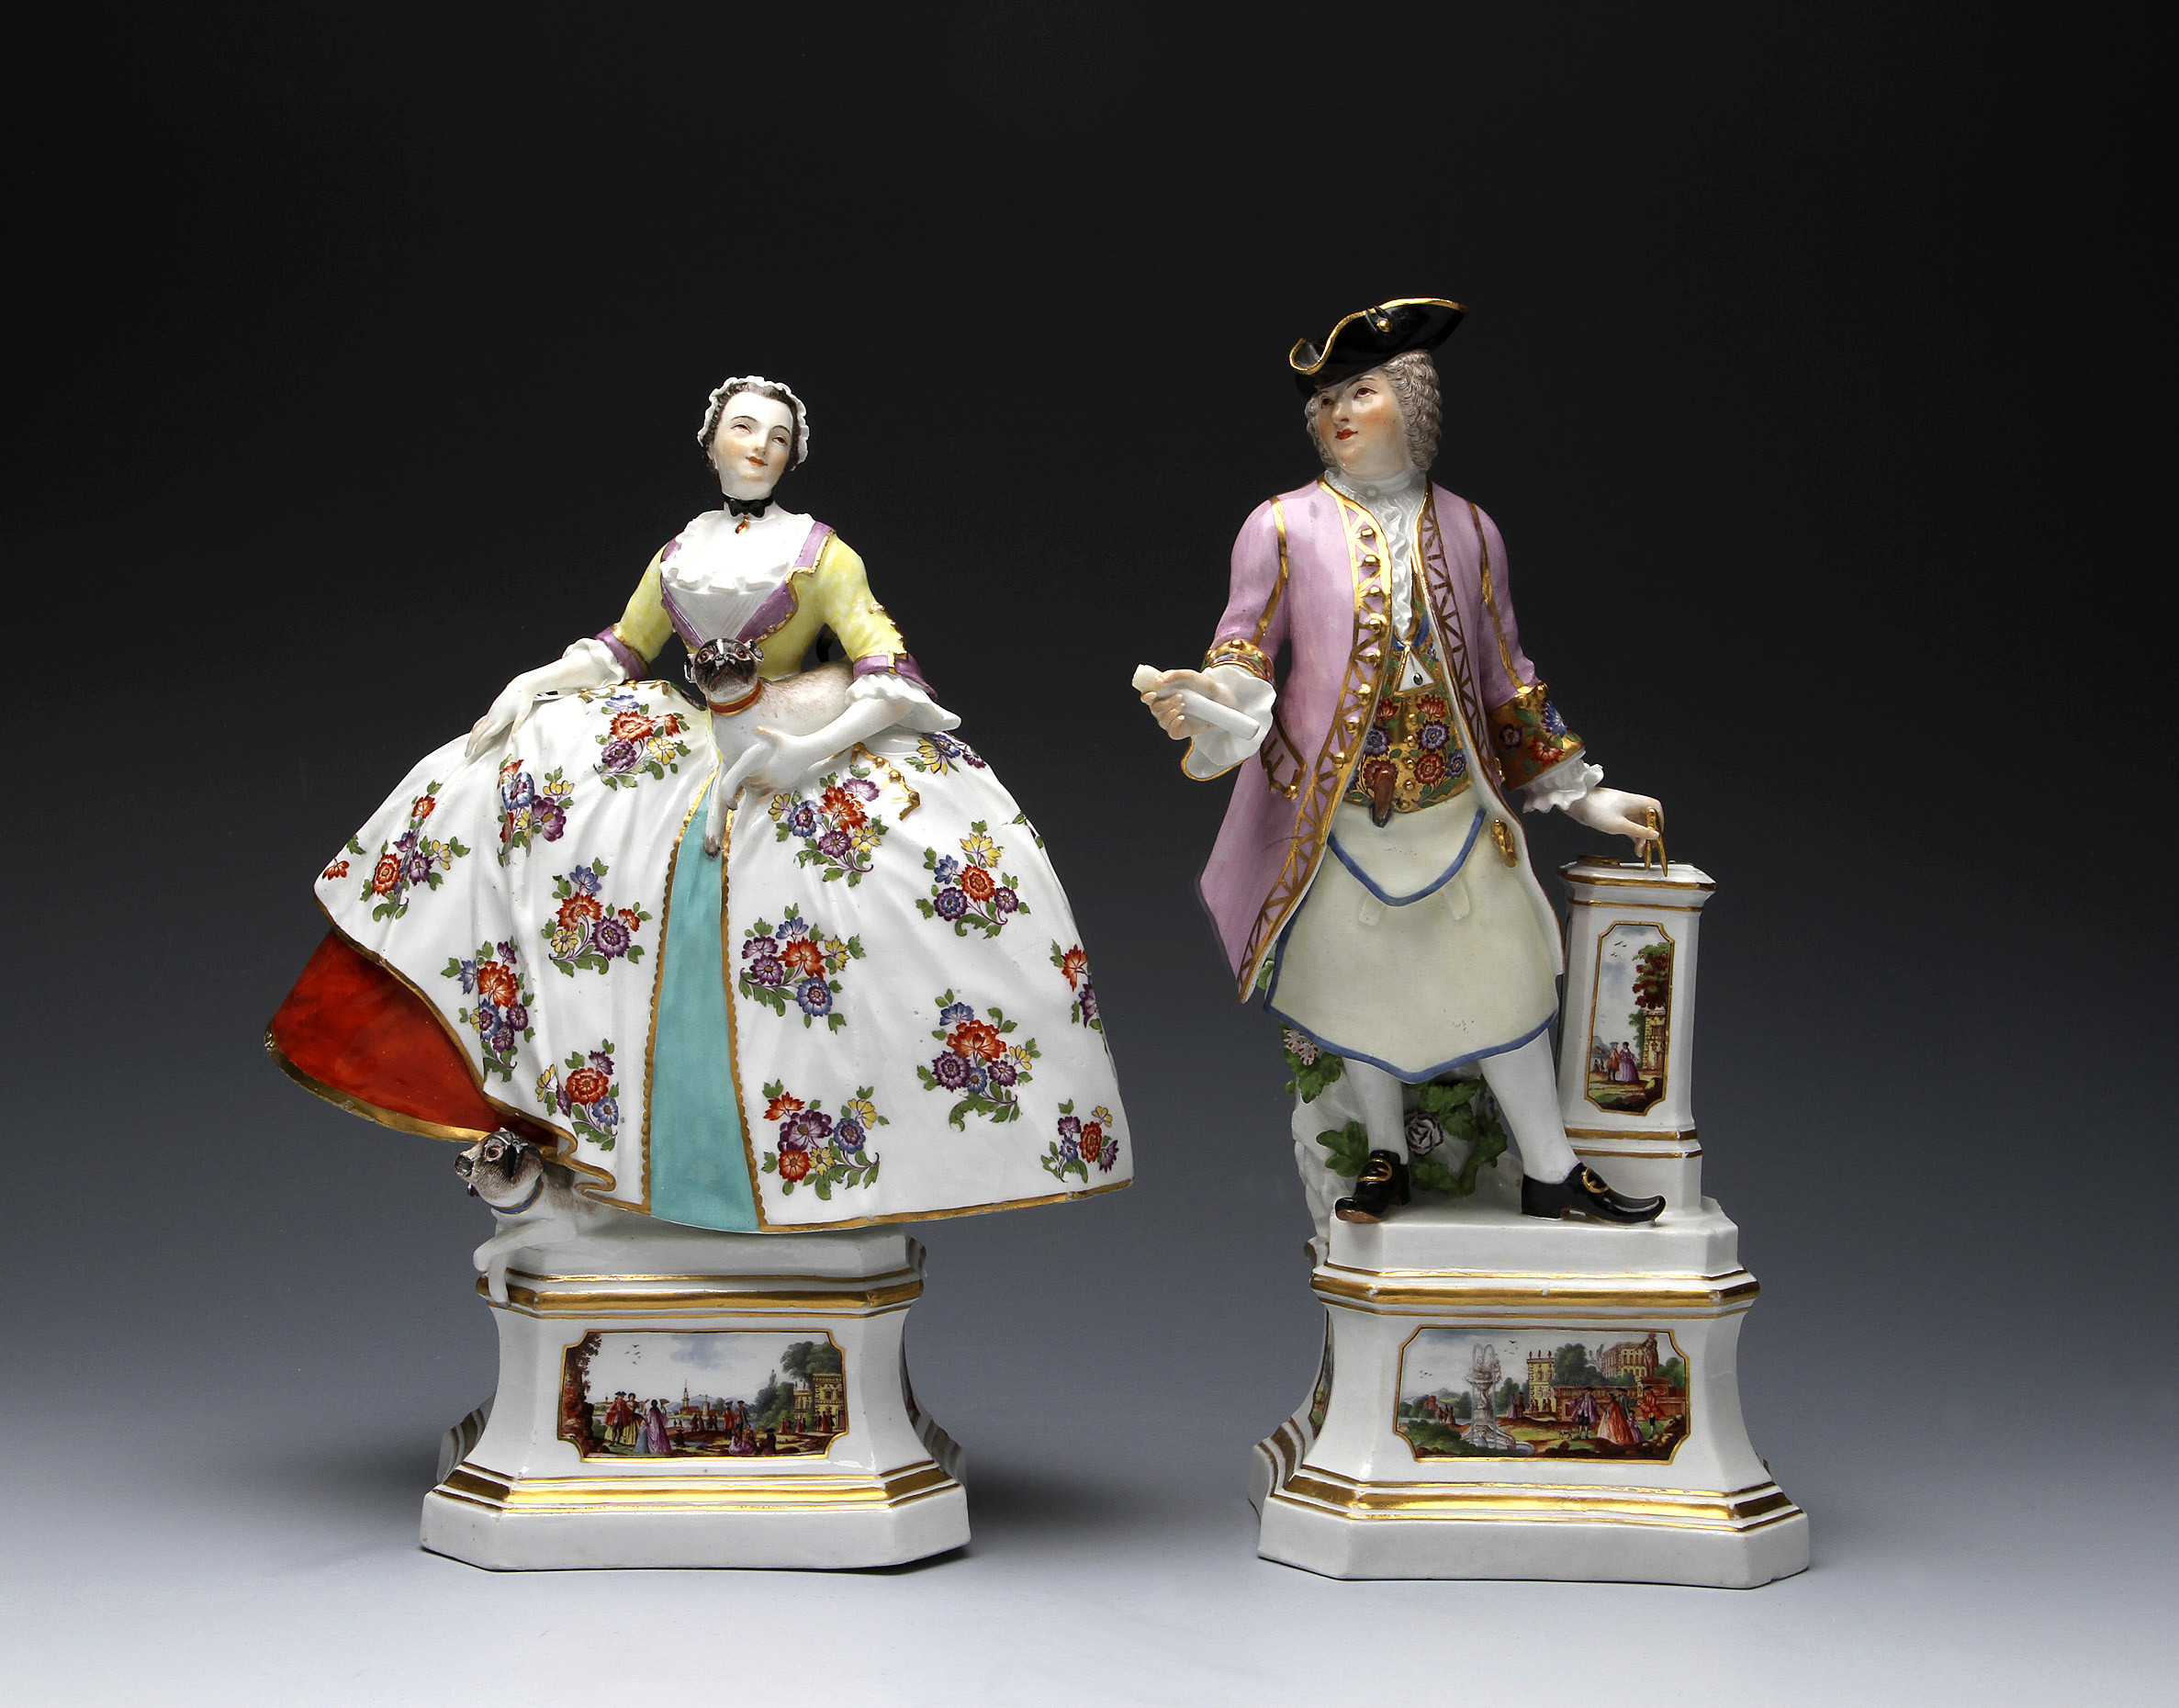 MEISSEN FREEMASON AND A LADY OF THE MOPSORDEN, modelled by